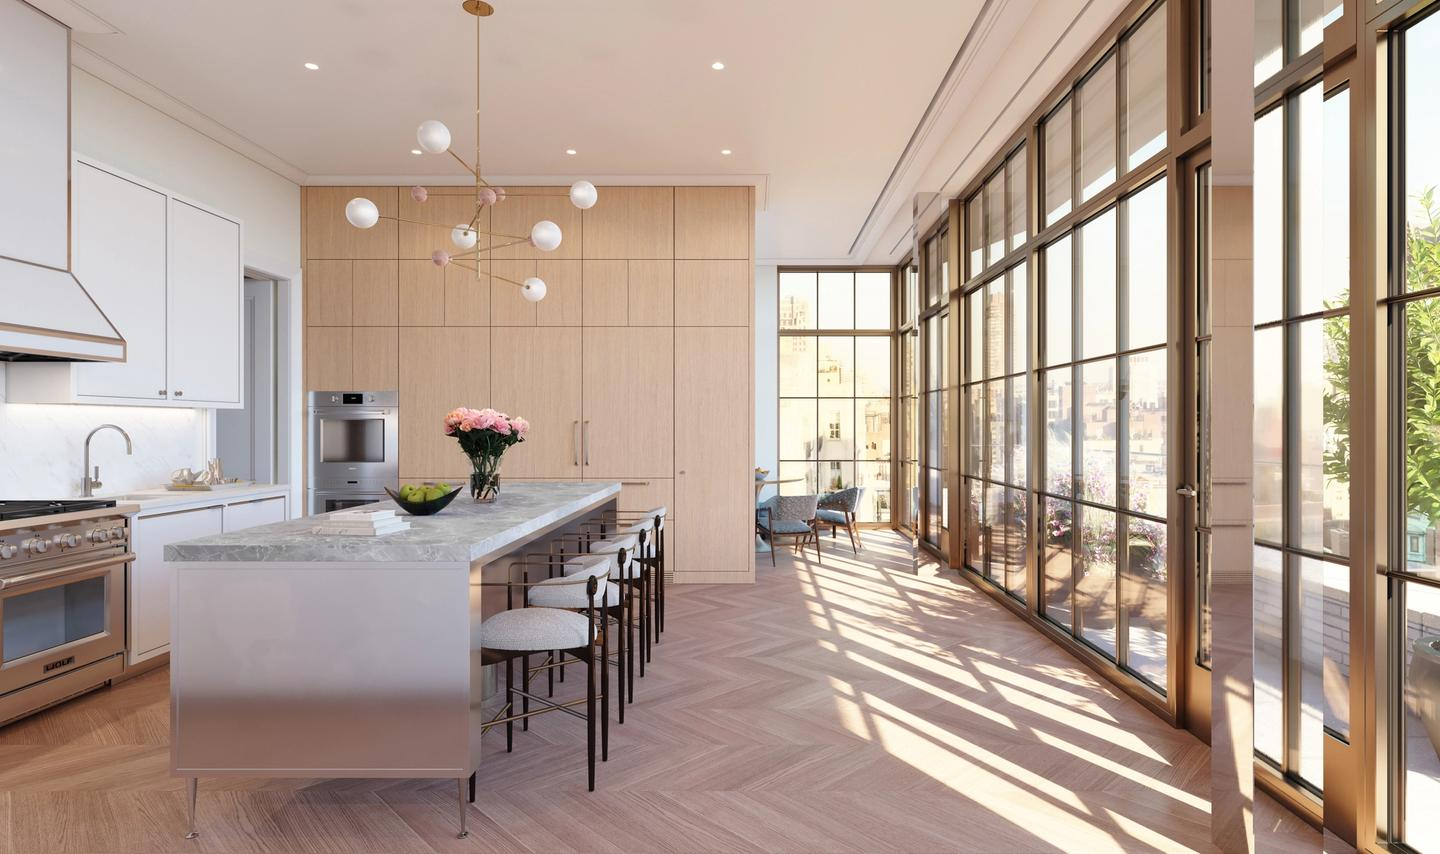 Penthouse 20 kitchen with adjacent breakfast area